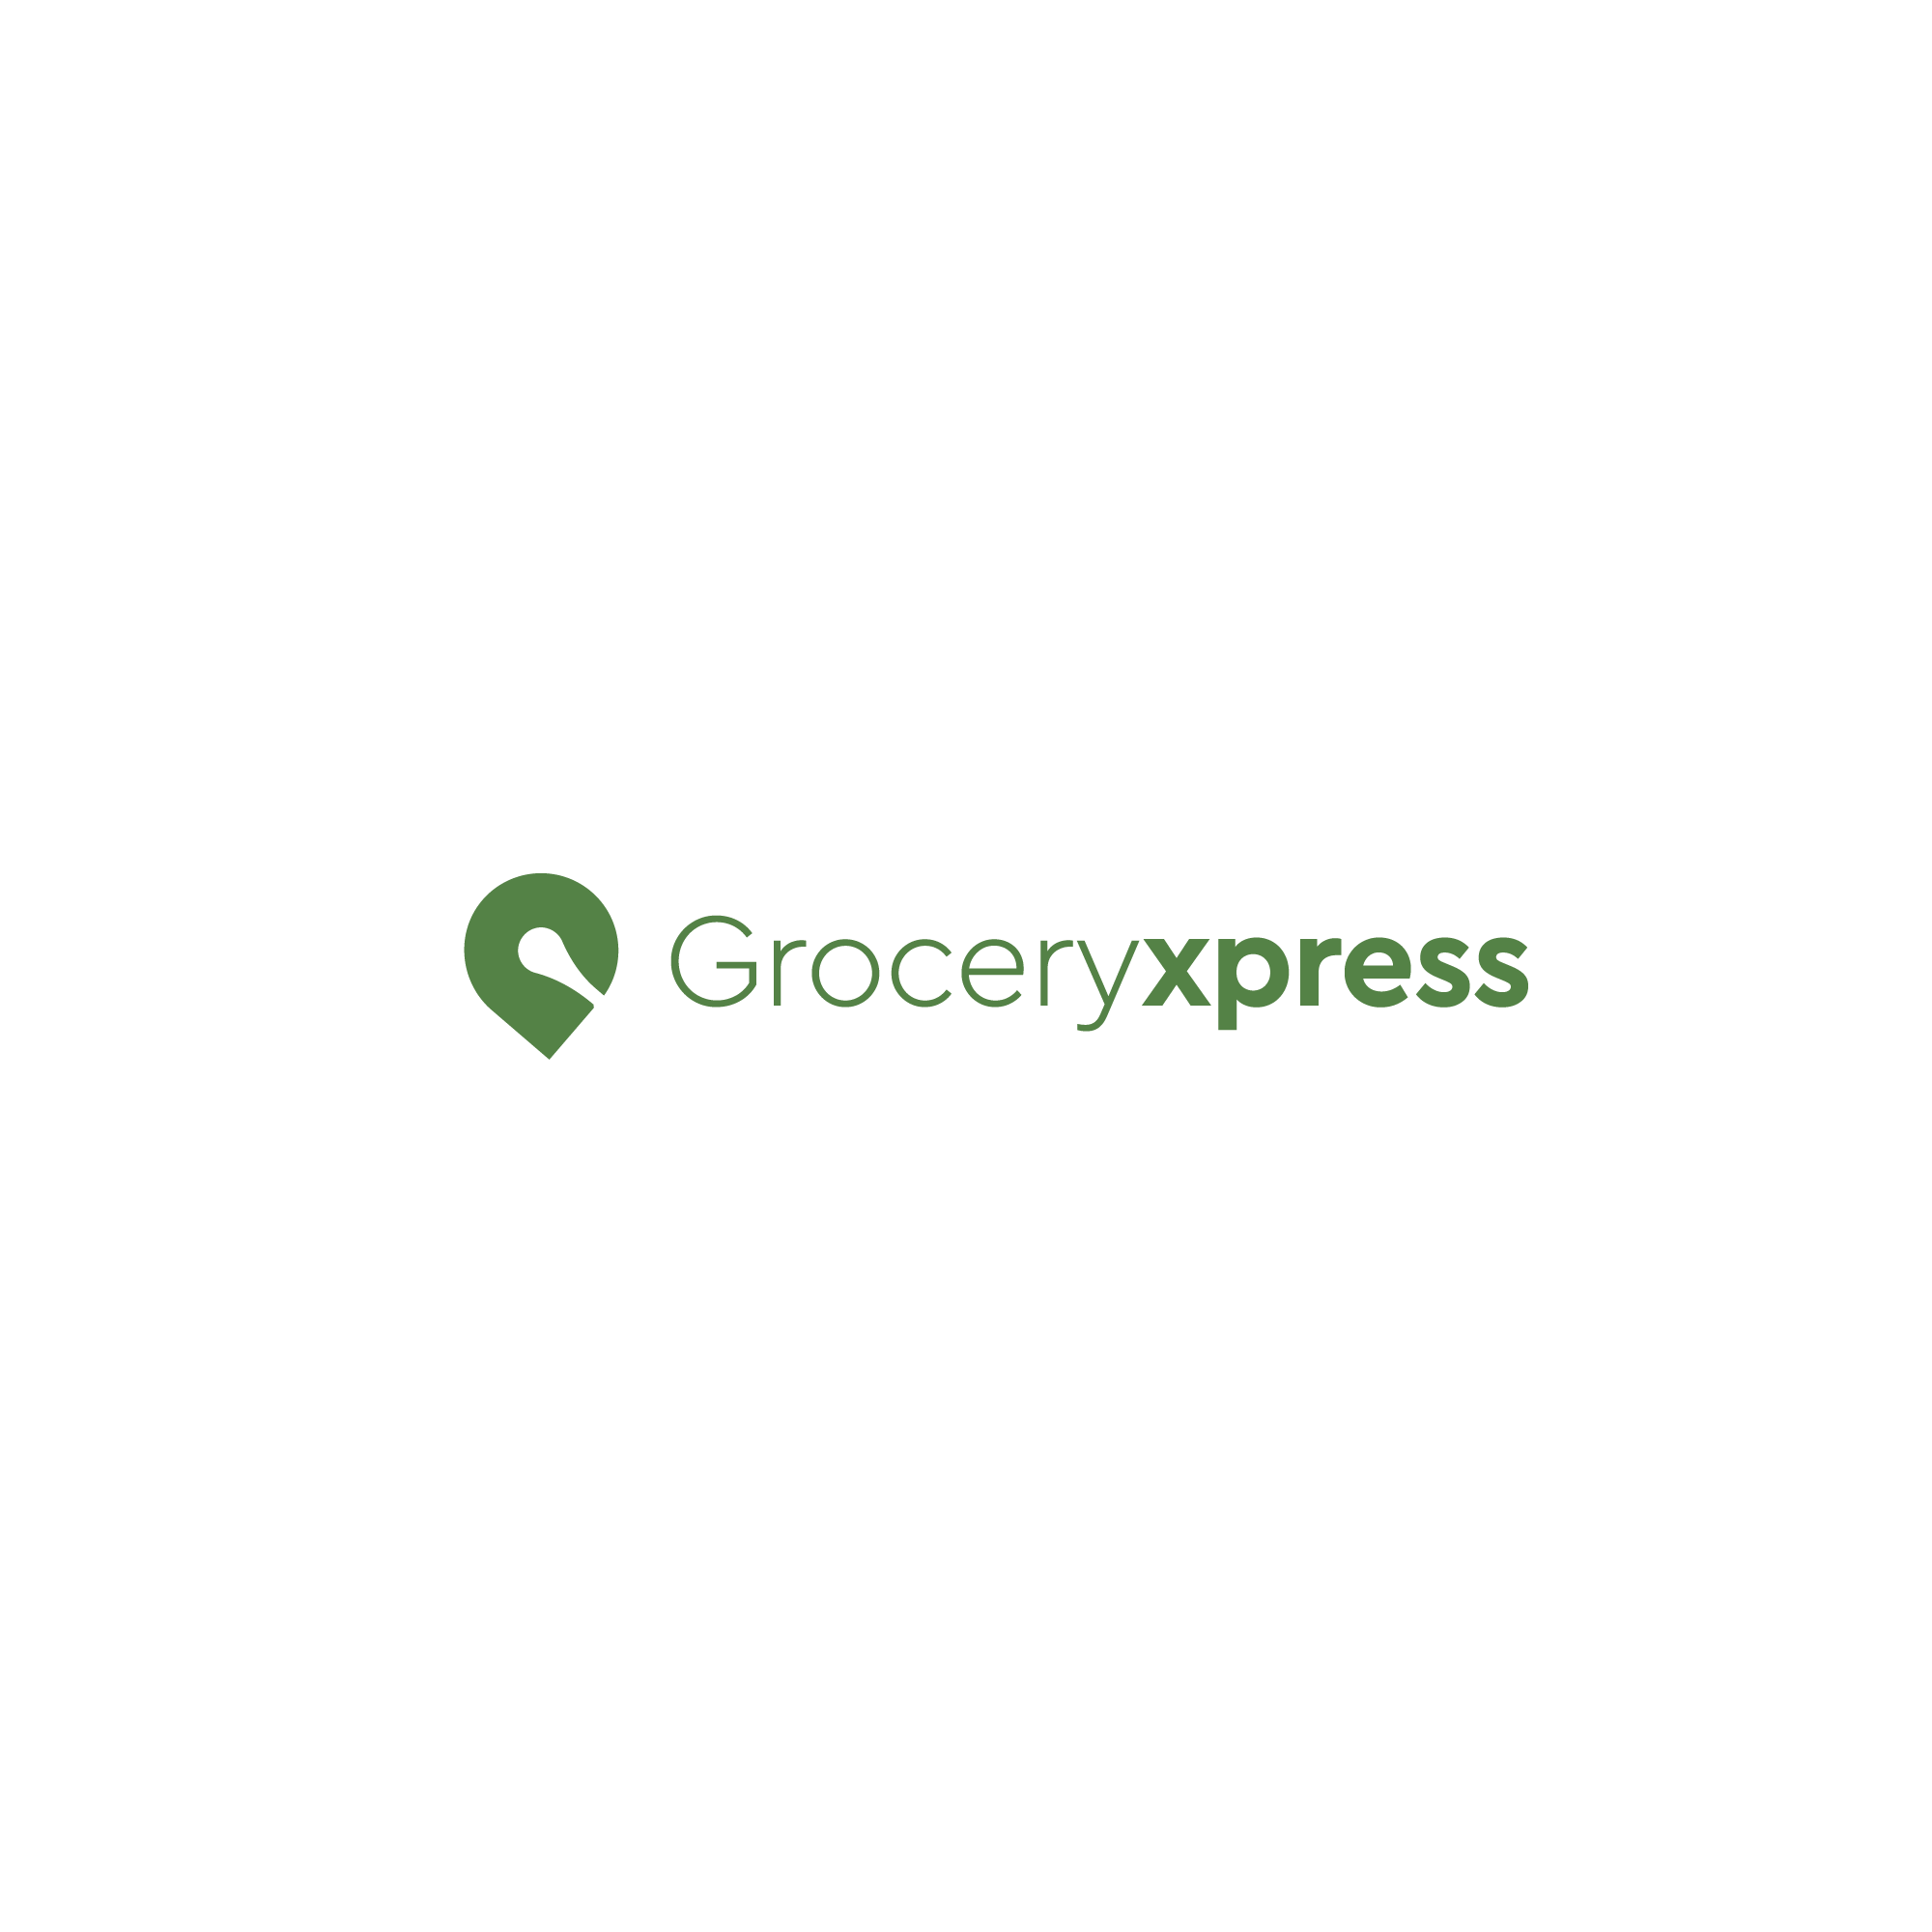 Grocery Xpress gallery